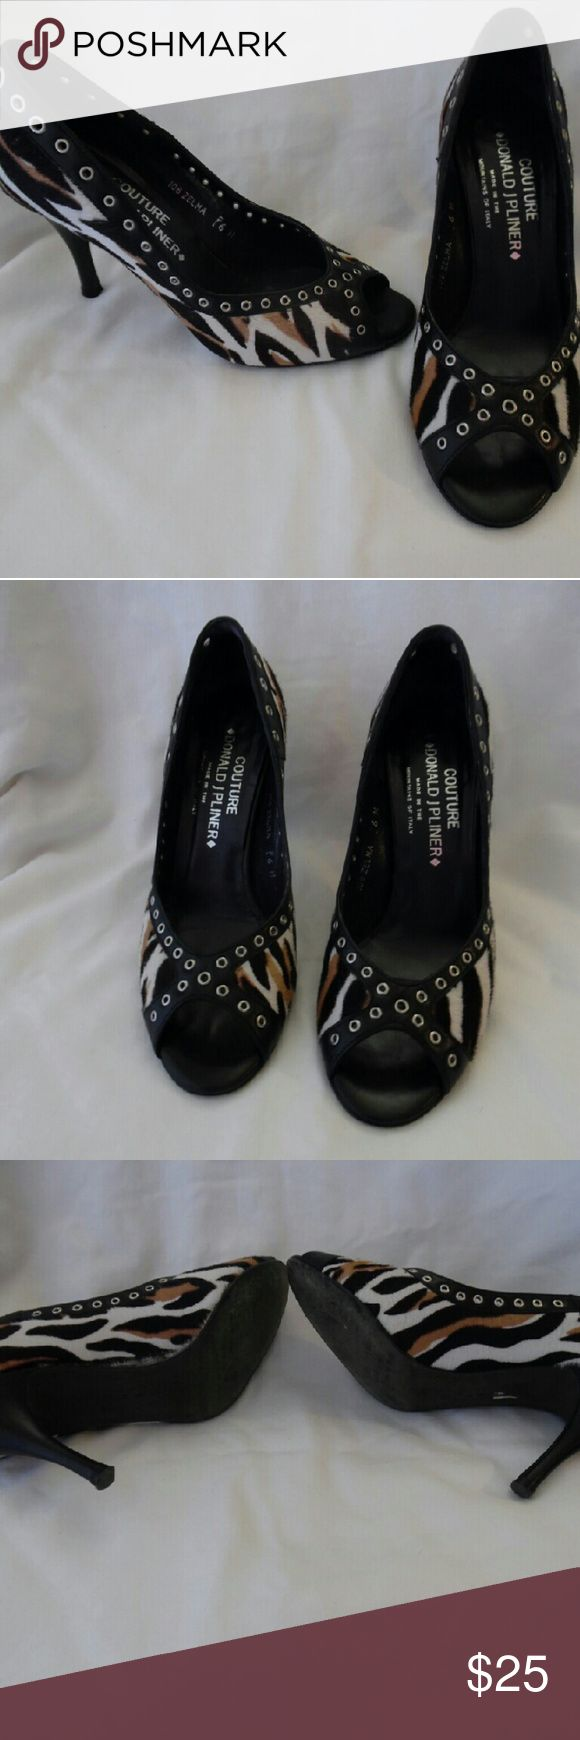 "Donald J Pliner Animal Print Pump ""Zelma"" Donald J Pliner Zelma peep toe heel leather with fur like material for animal print Donald J. Pliner Shoes Heels"